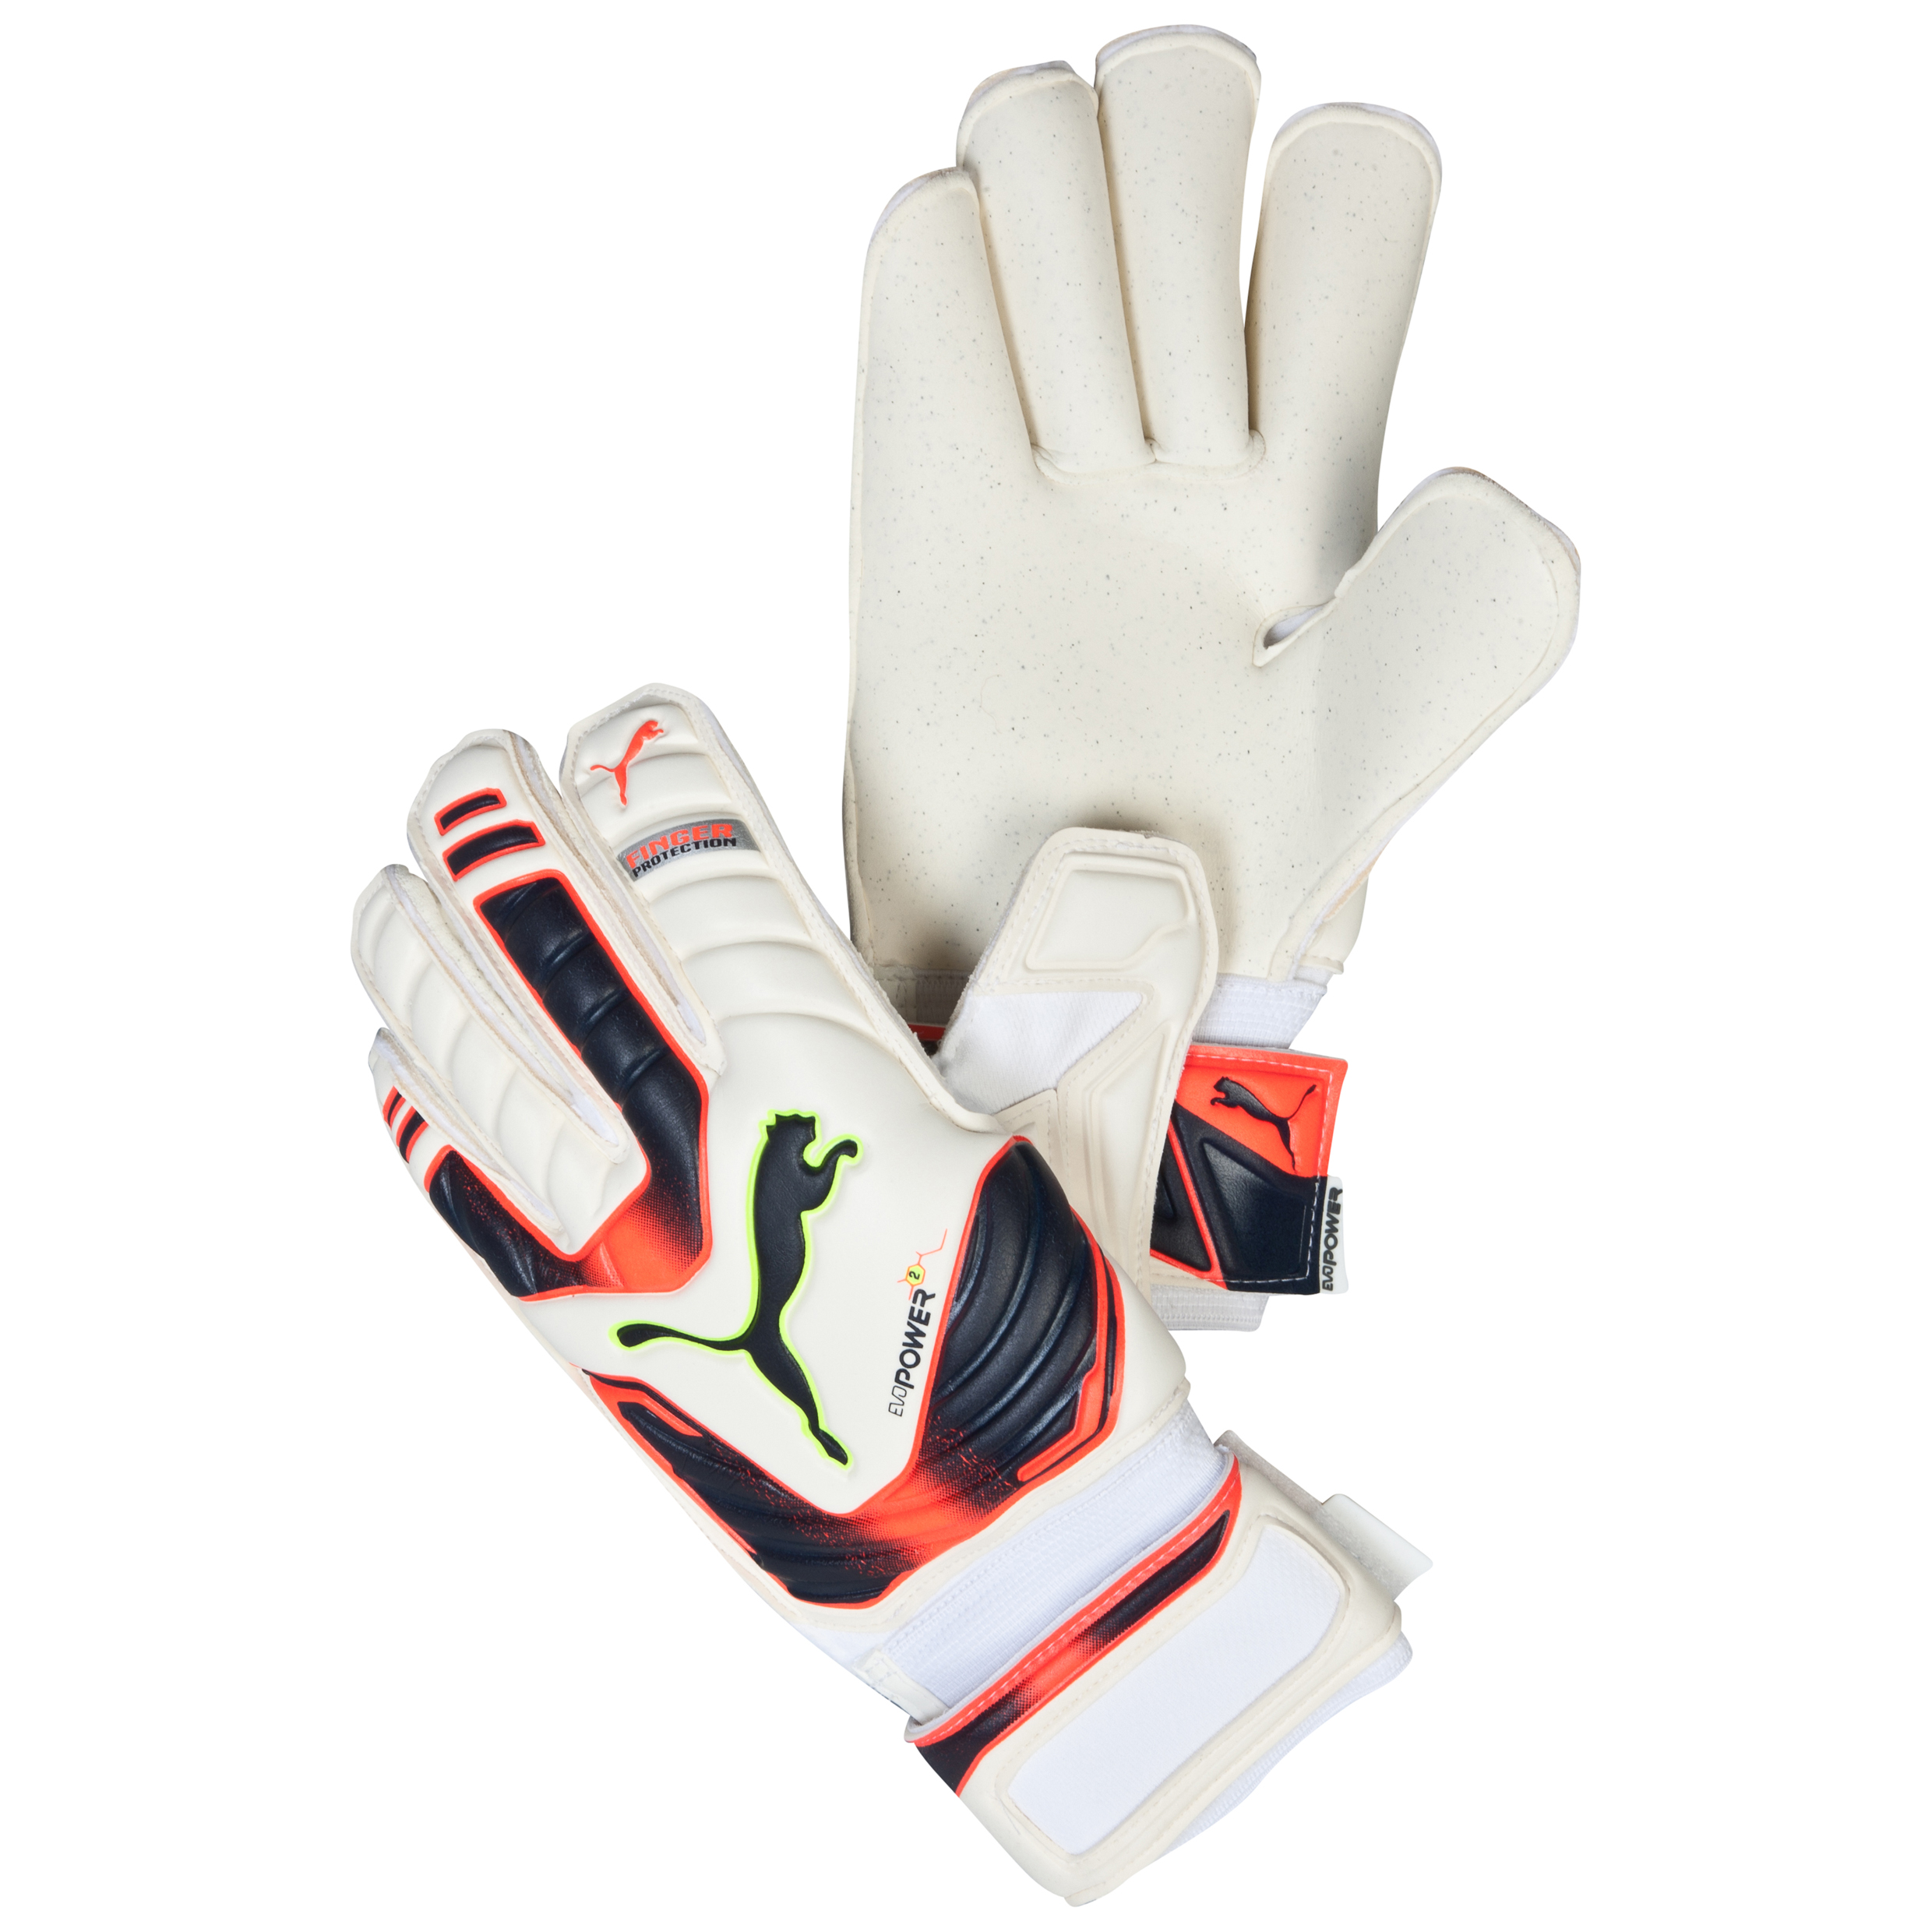 Puma evoPOWER Protect 2 GC Goalkeeper Gloves White